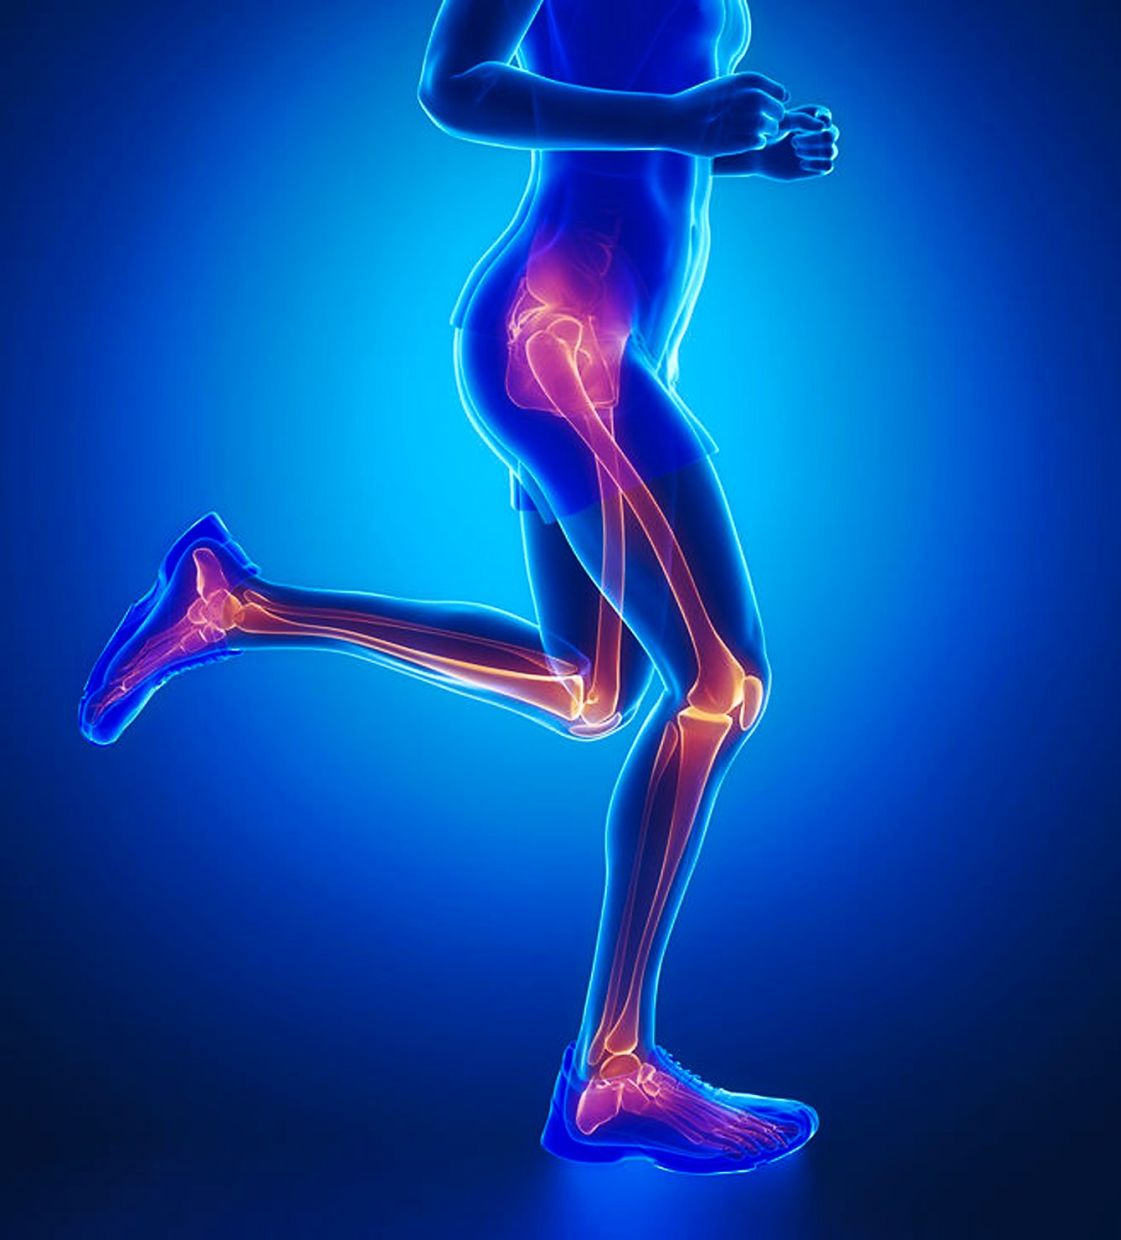 The force going through your legs while running can be up to 12 times your body weight, so it's important that you maintain the correct form and watch out for warning signs of injury, especially as a beginner.